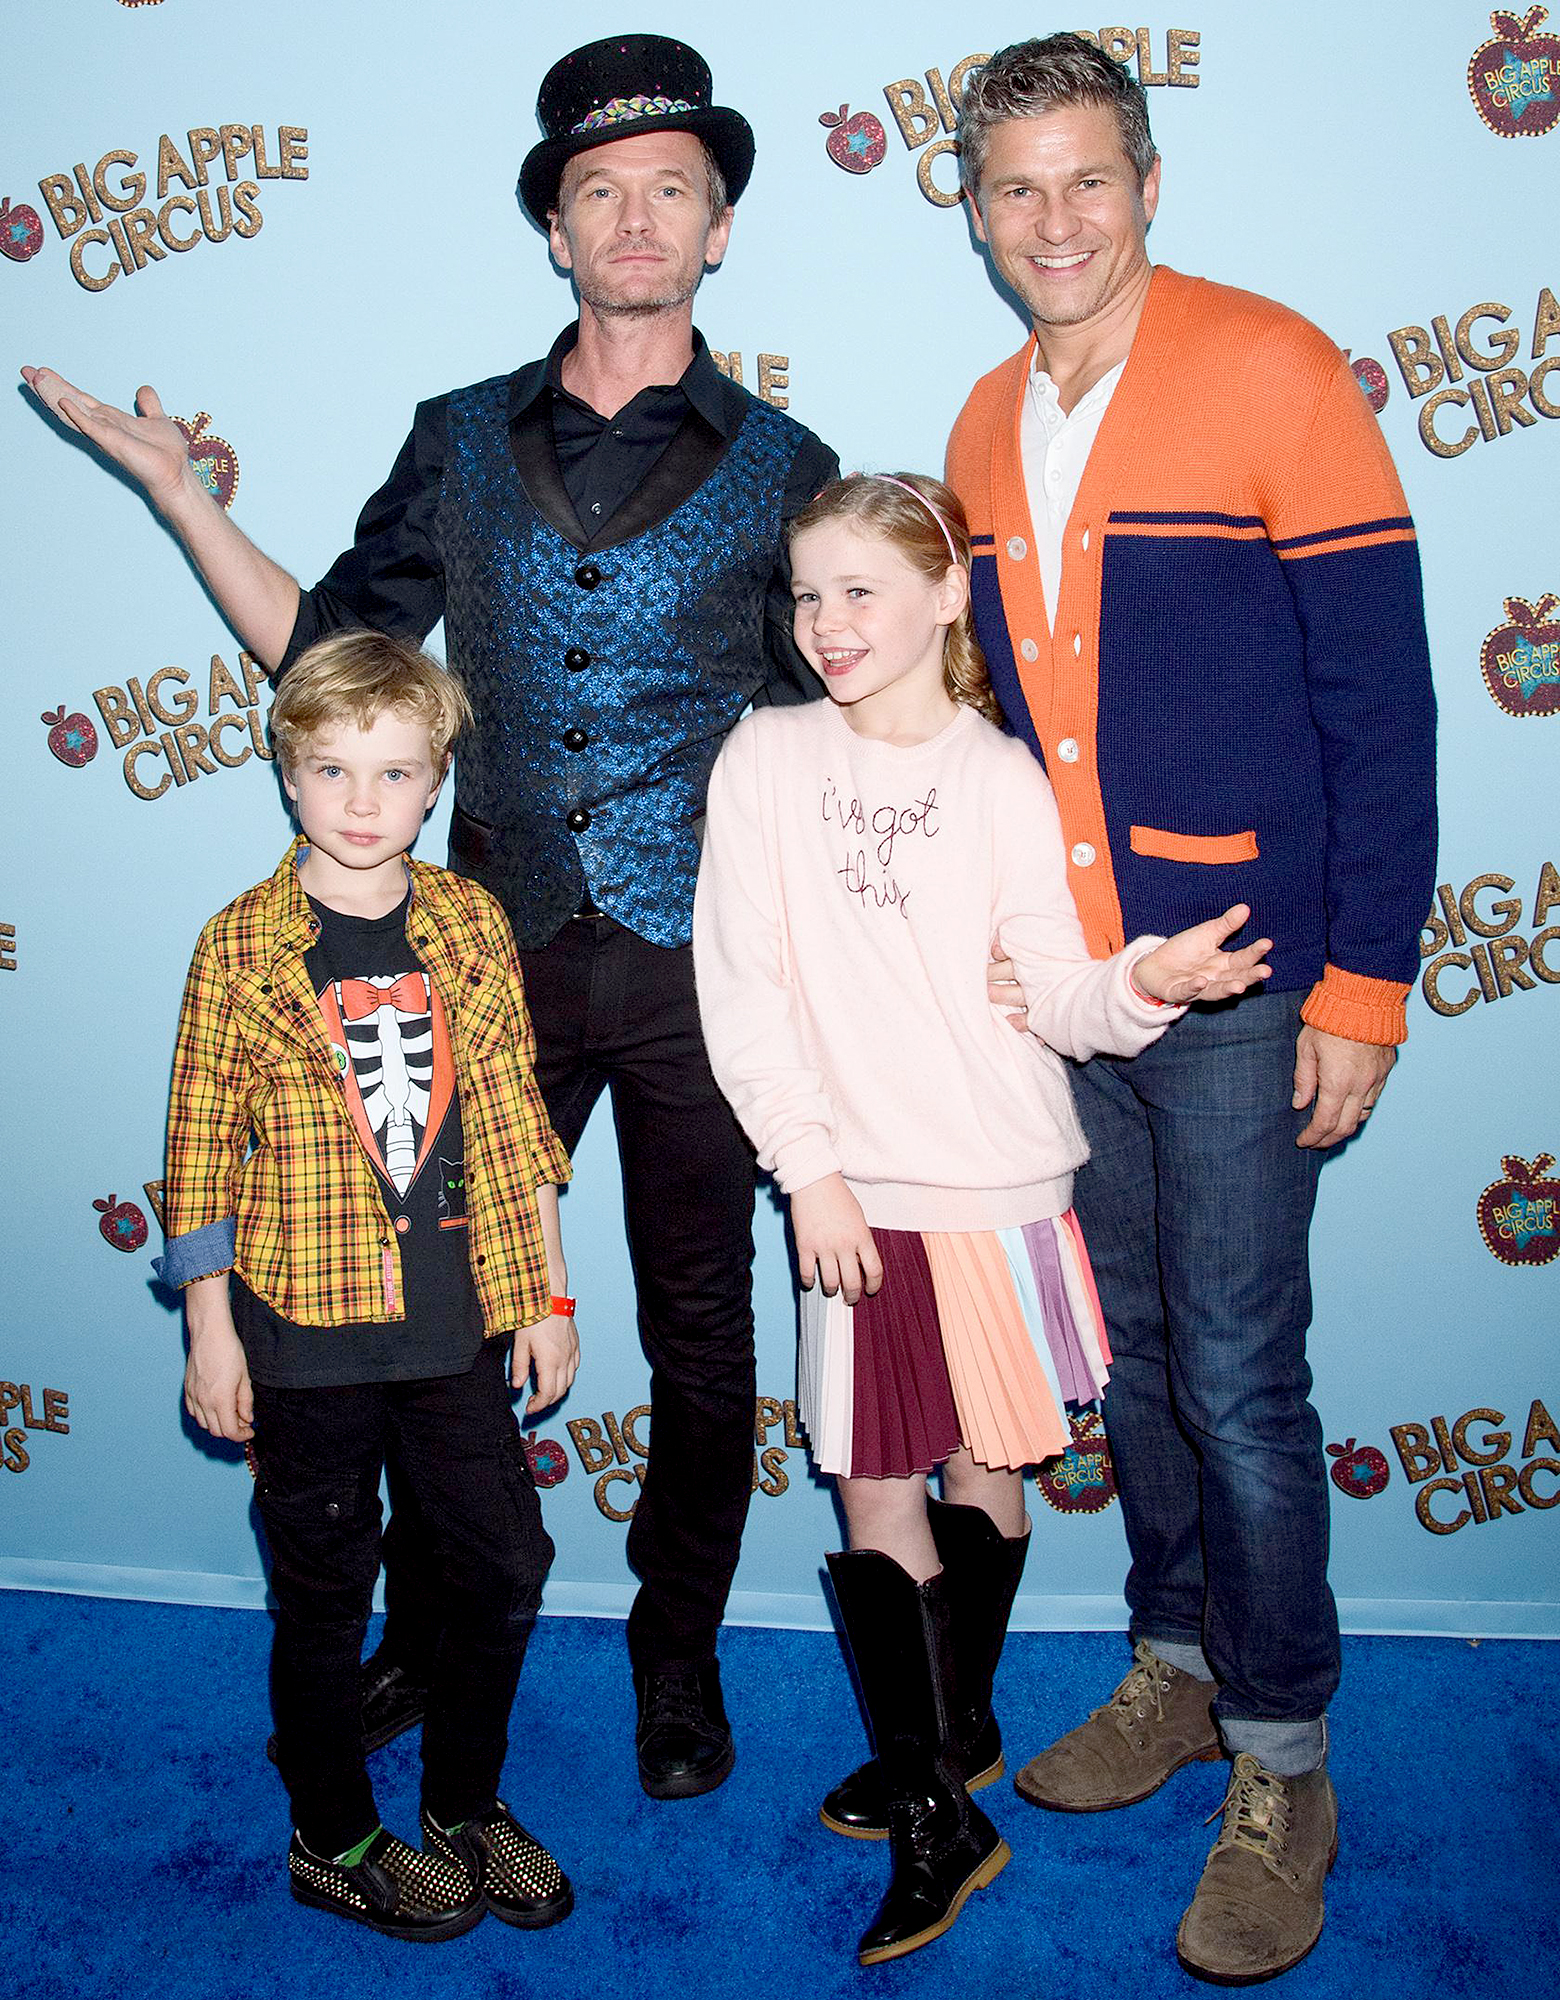 David-Burtka--Working-on-Neil-Patrick-Harris-Relationship-Is-Important-for-Kids-to-See-2